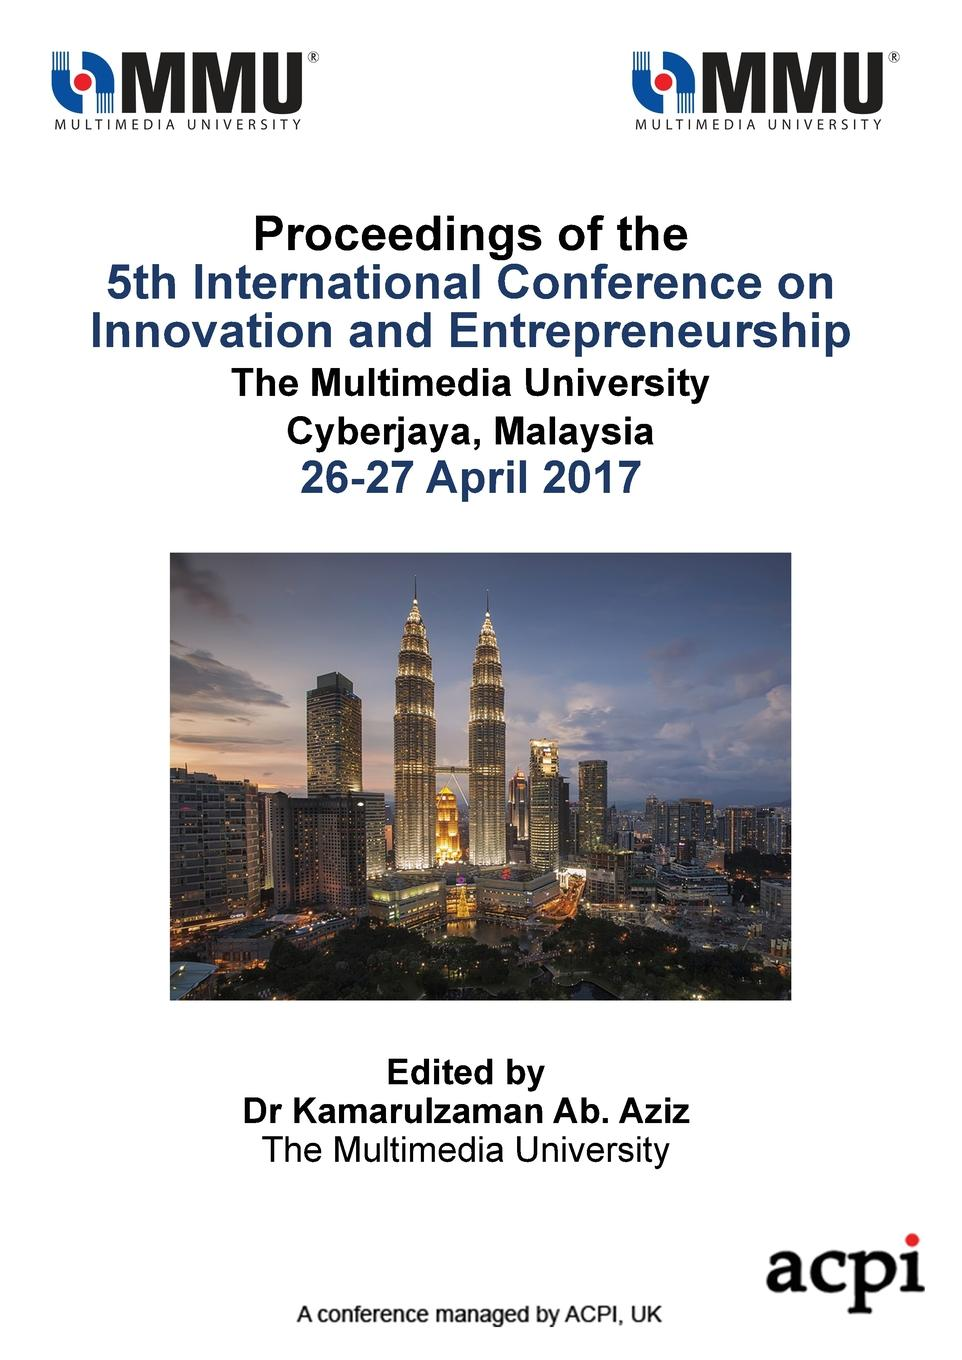 ICIE 2017 - Proceedings of the 5th International Conference on Innovation and Entrepreneurship knowledge and innovation dilemmas